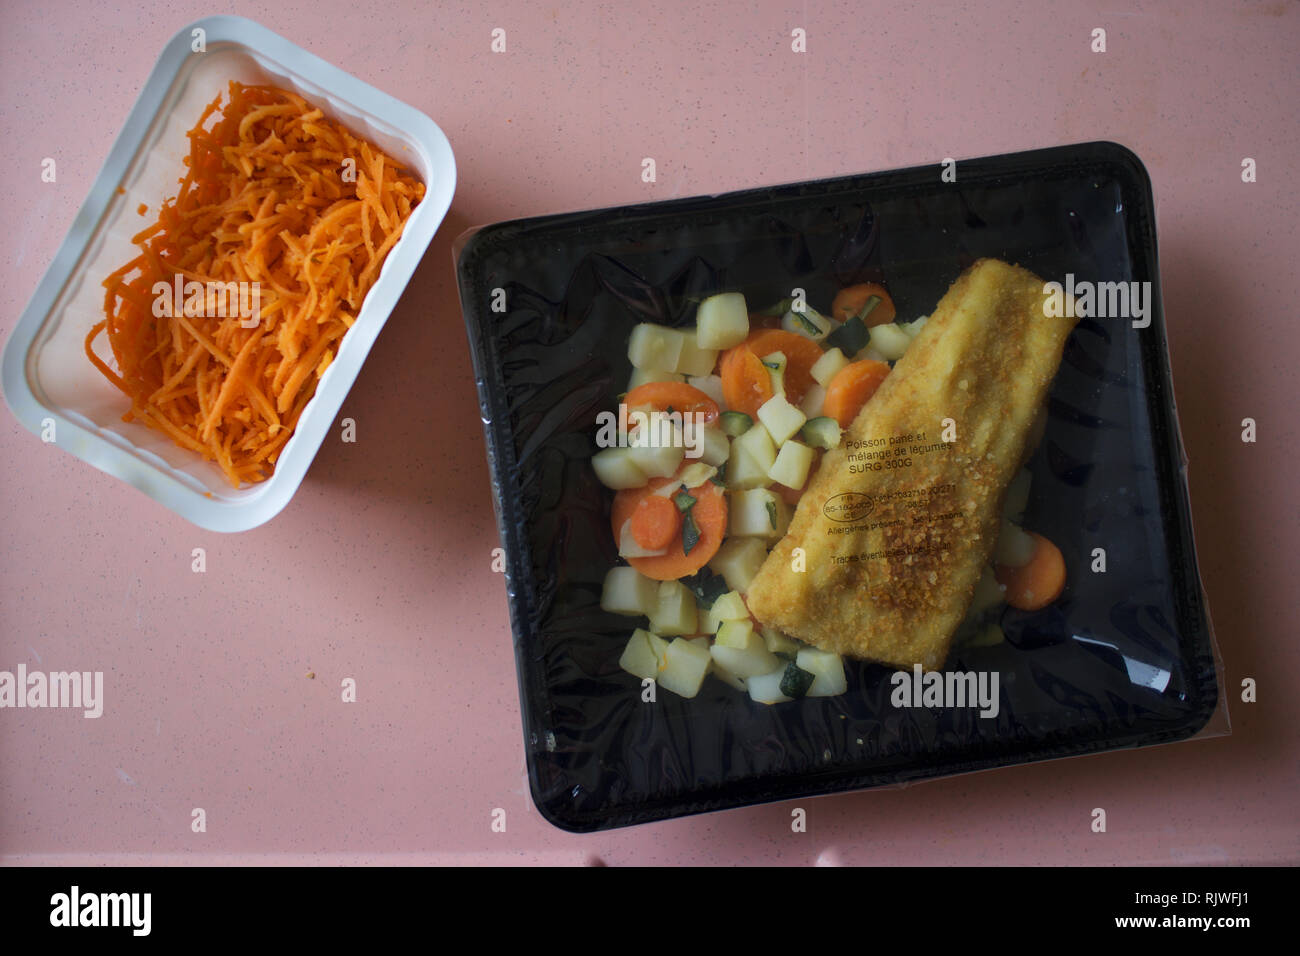 Food in plastic packaging - ready meal, factory fresh - battered fish and vegetables - Stock Image